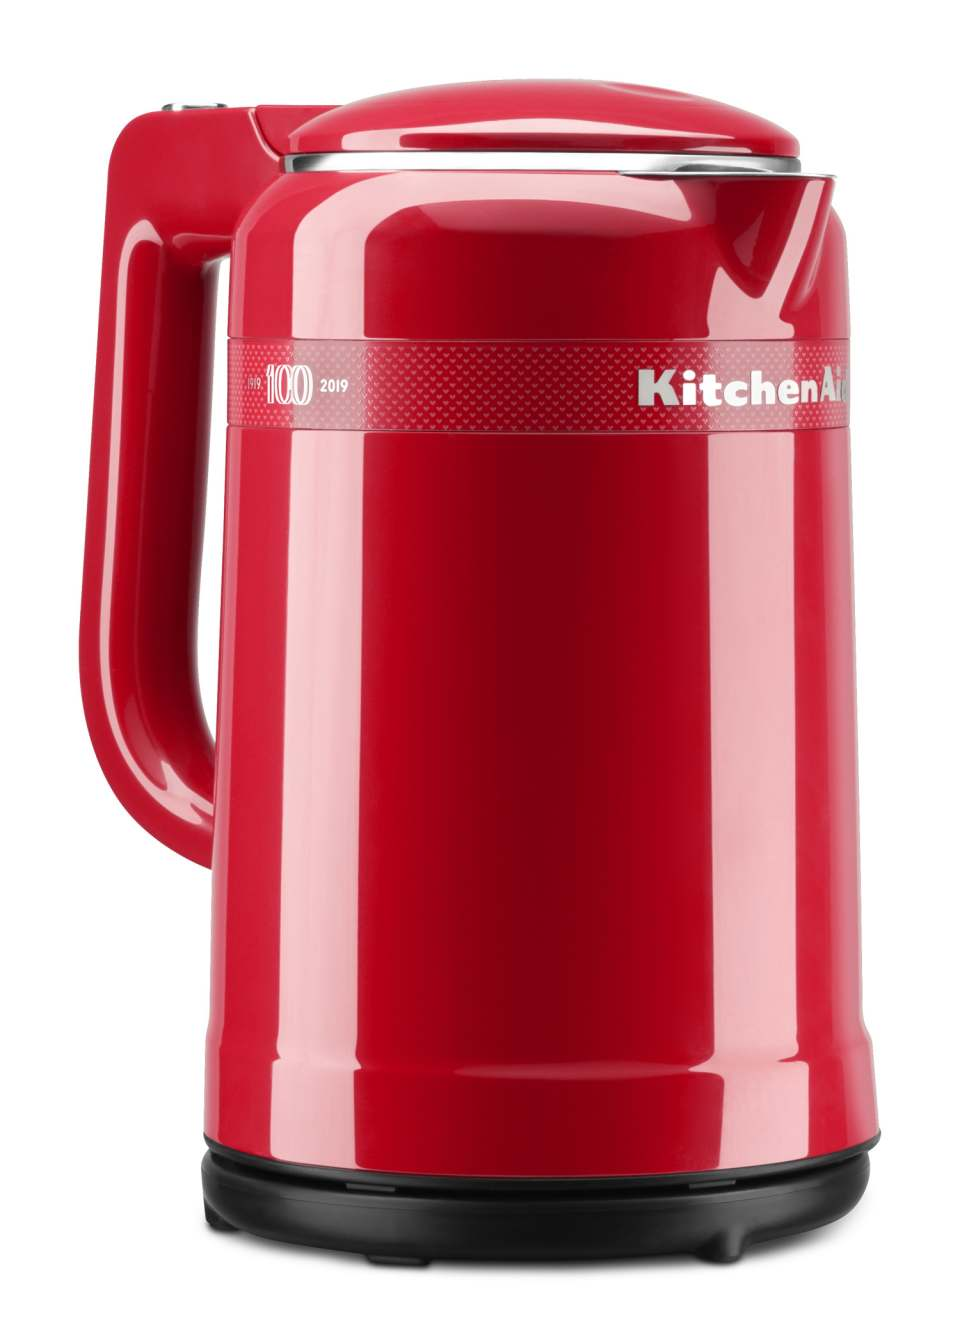 KitchenAid Wasserkocher Queen of Hearts in limitierter Auflage.